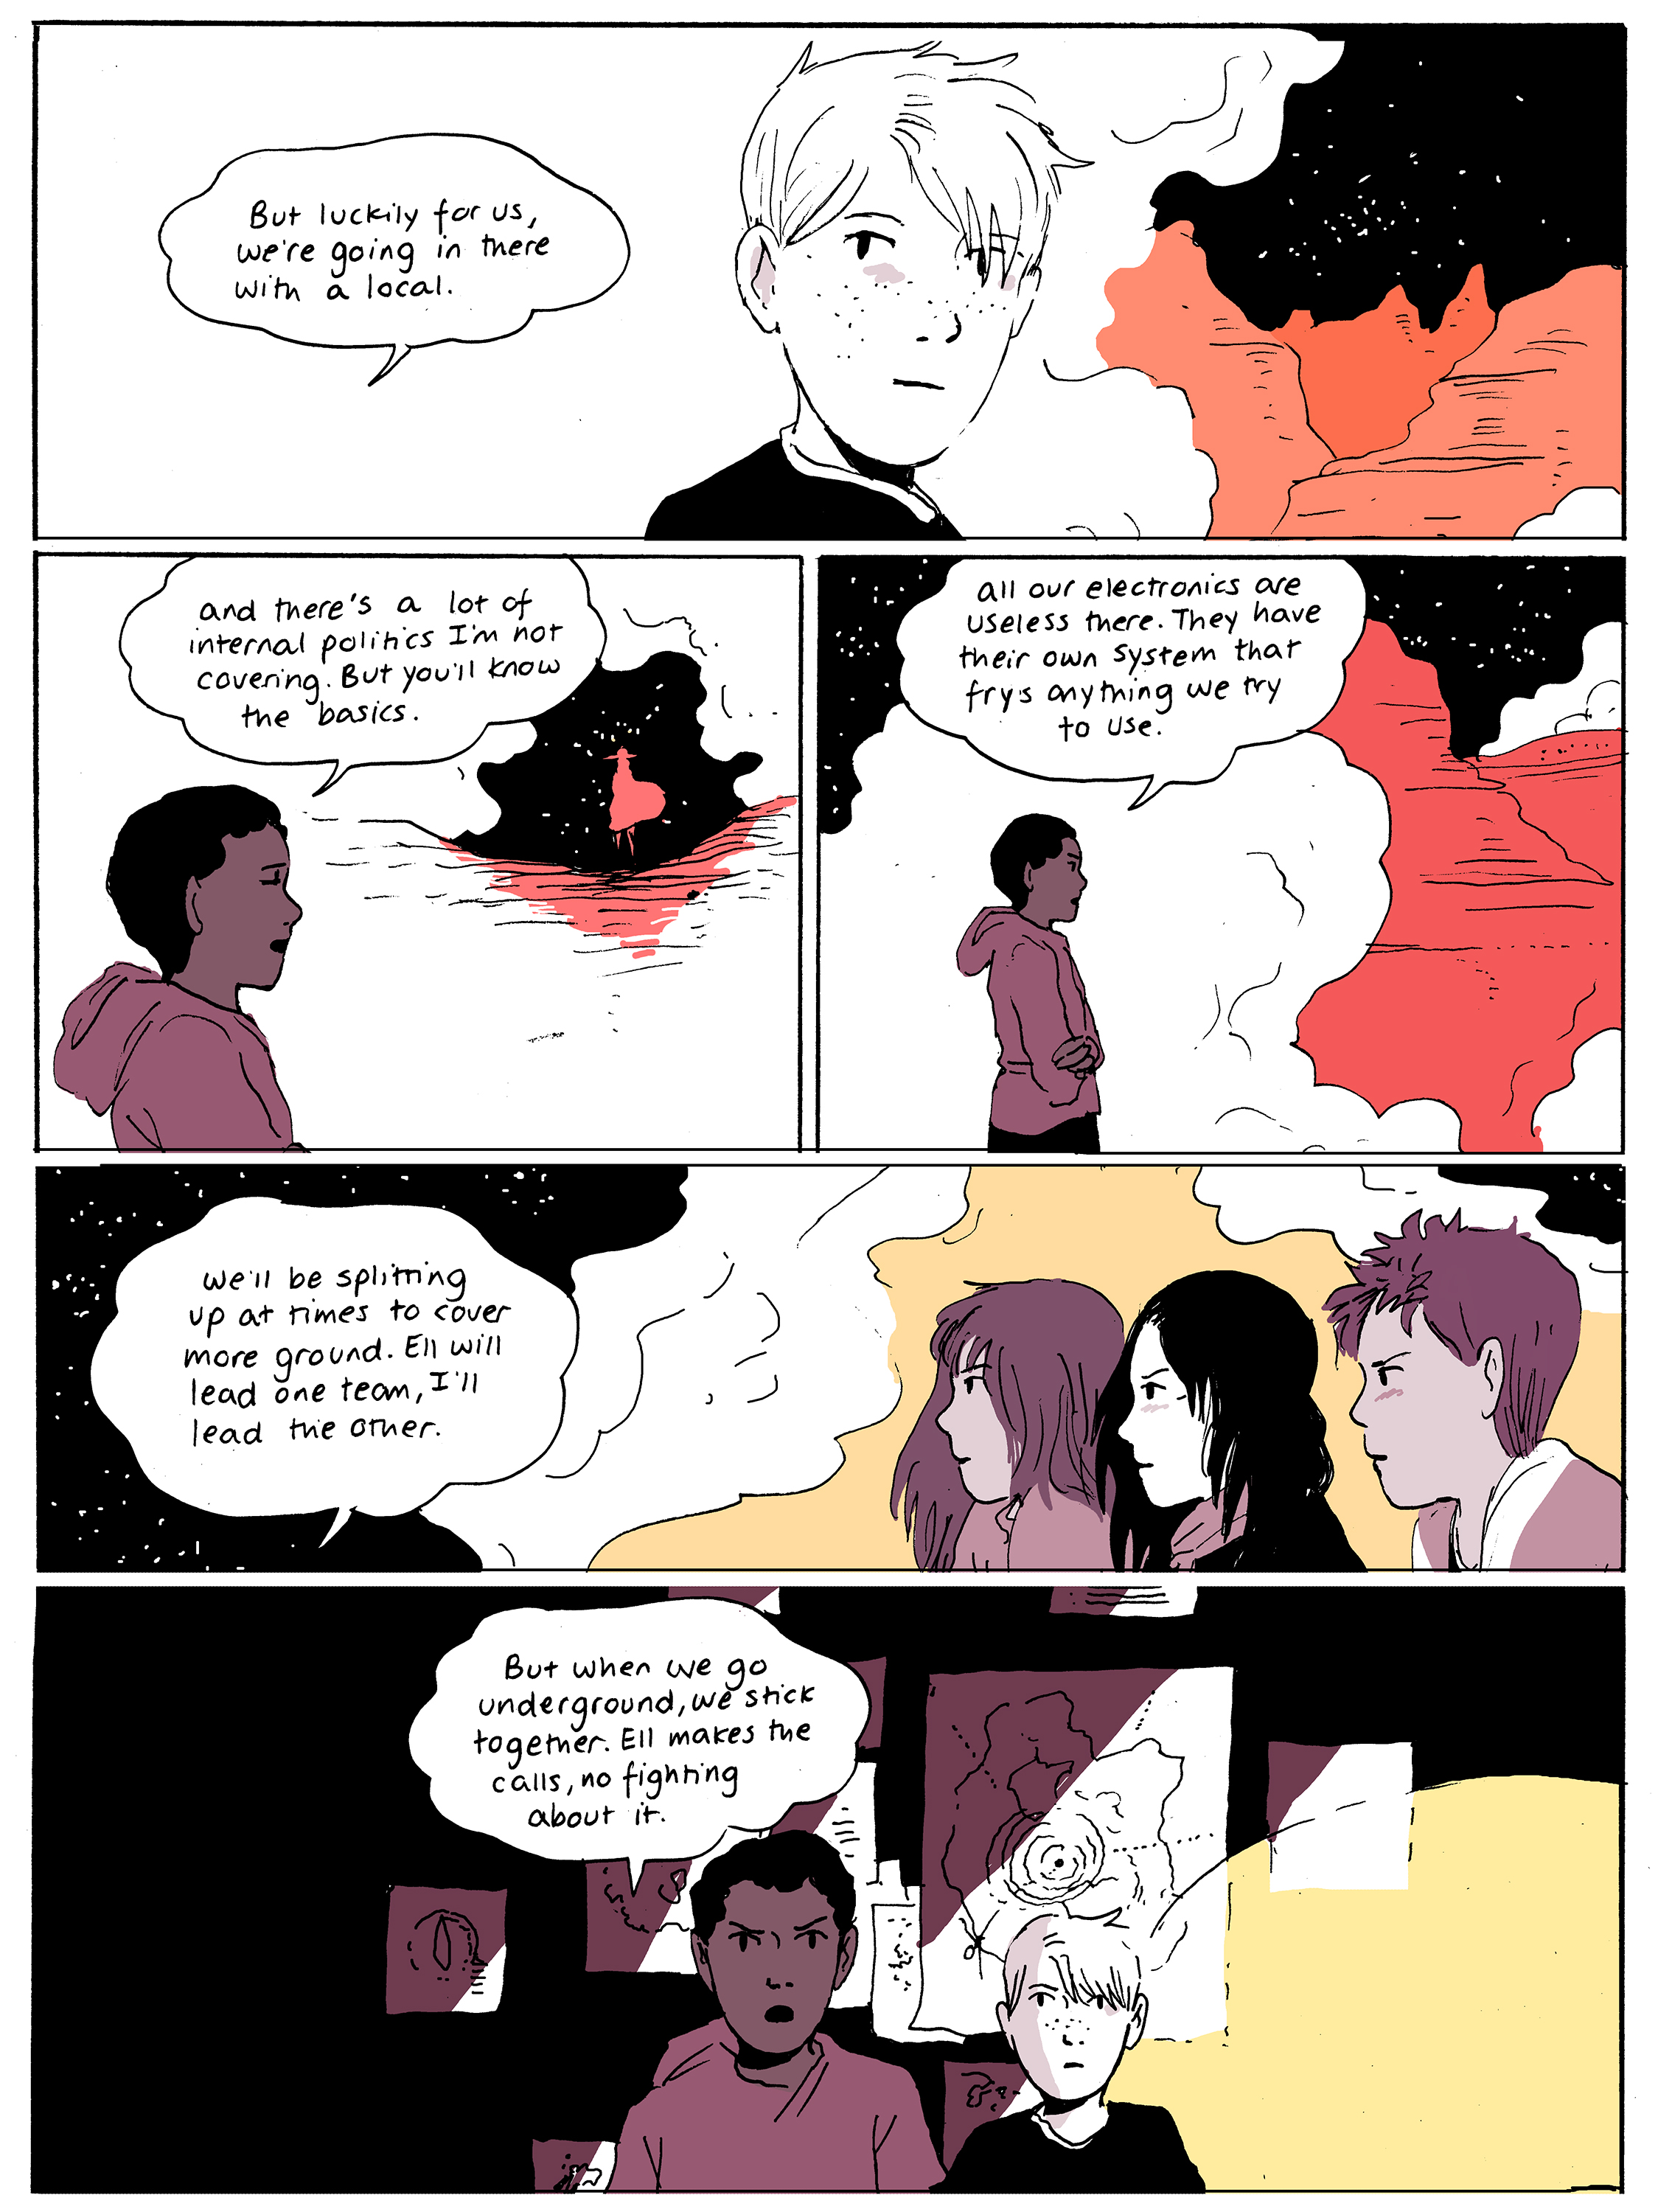 chapter14_page12.jpg